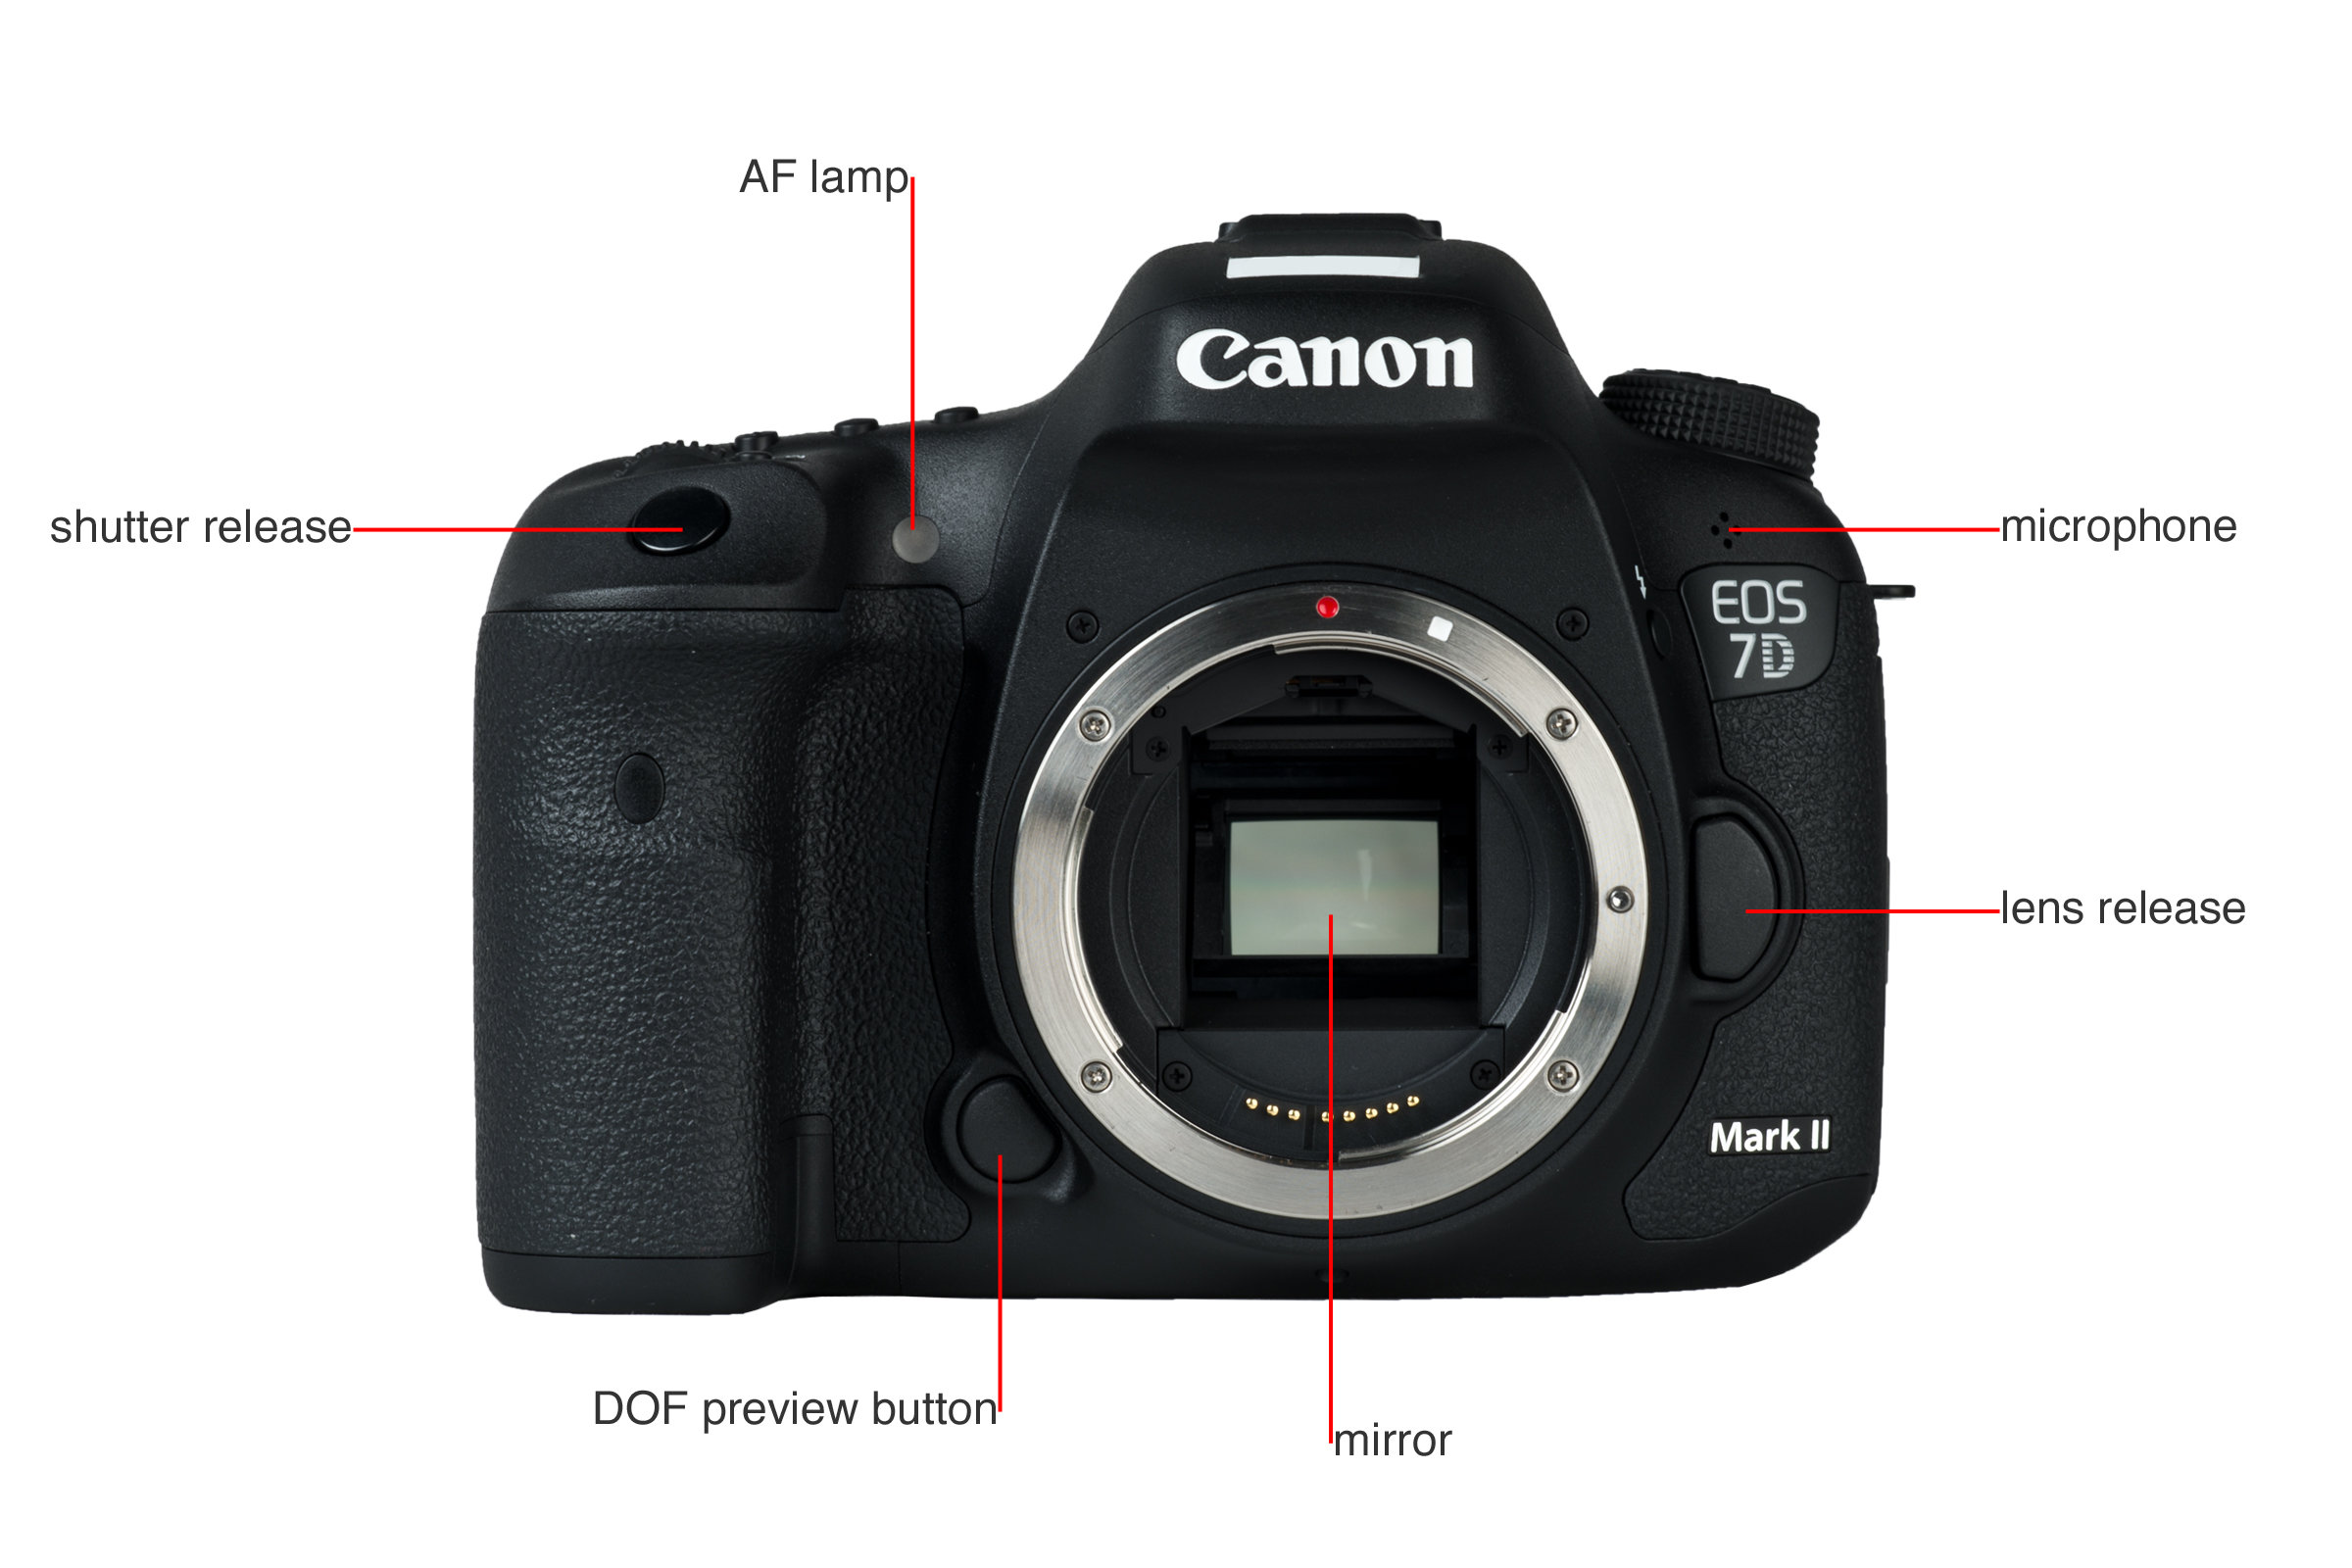 A picture illustrating the buttons and controls of the Canon 7D MkII's front.